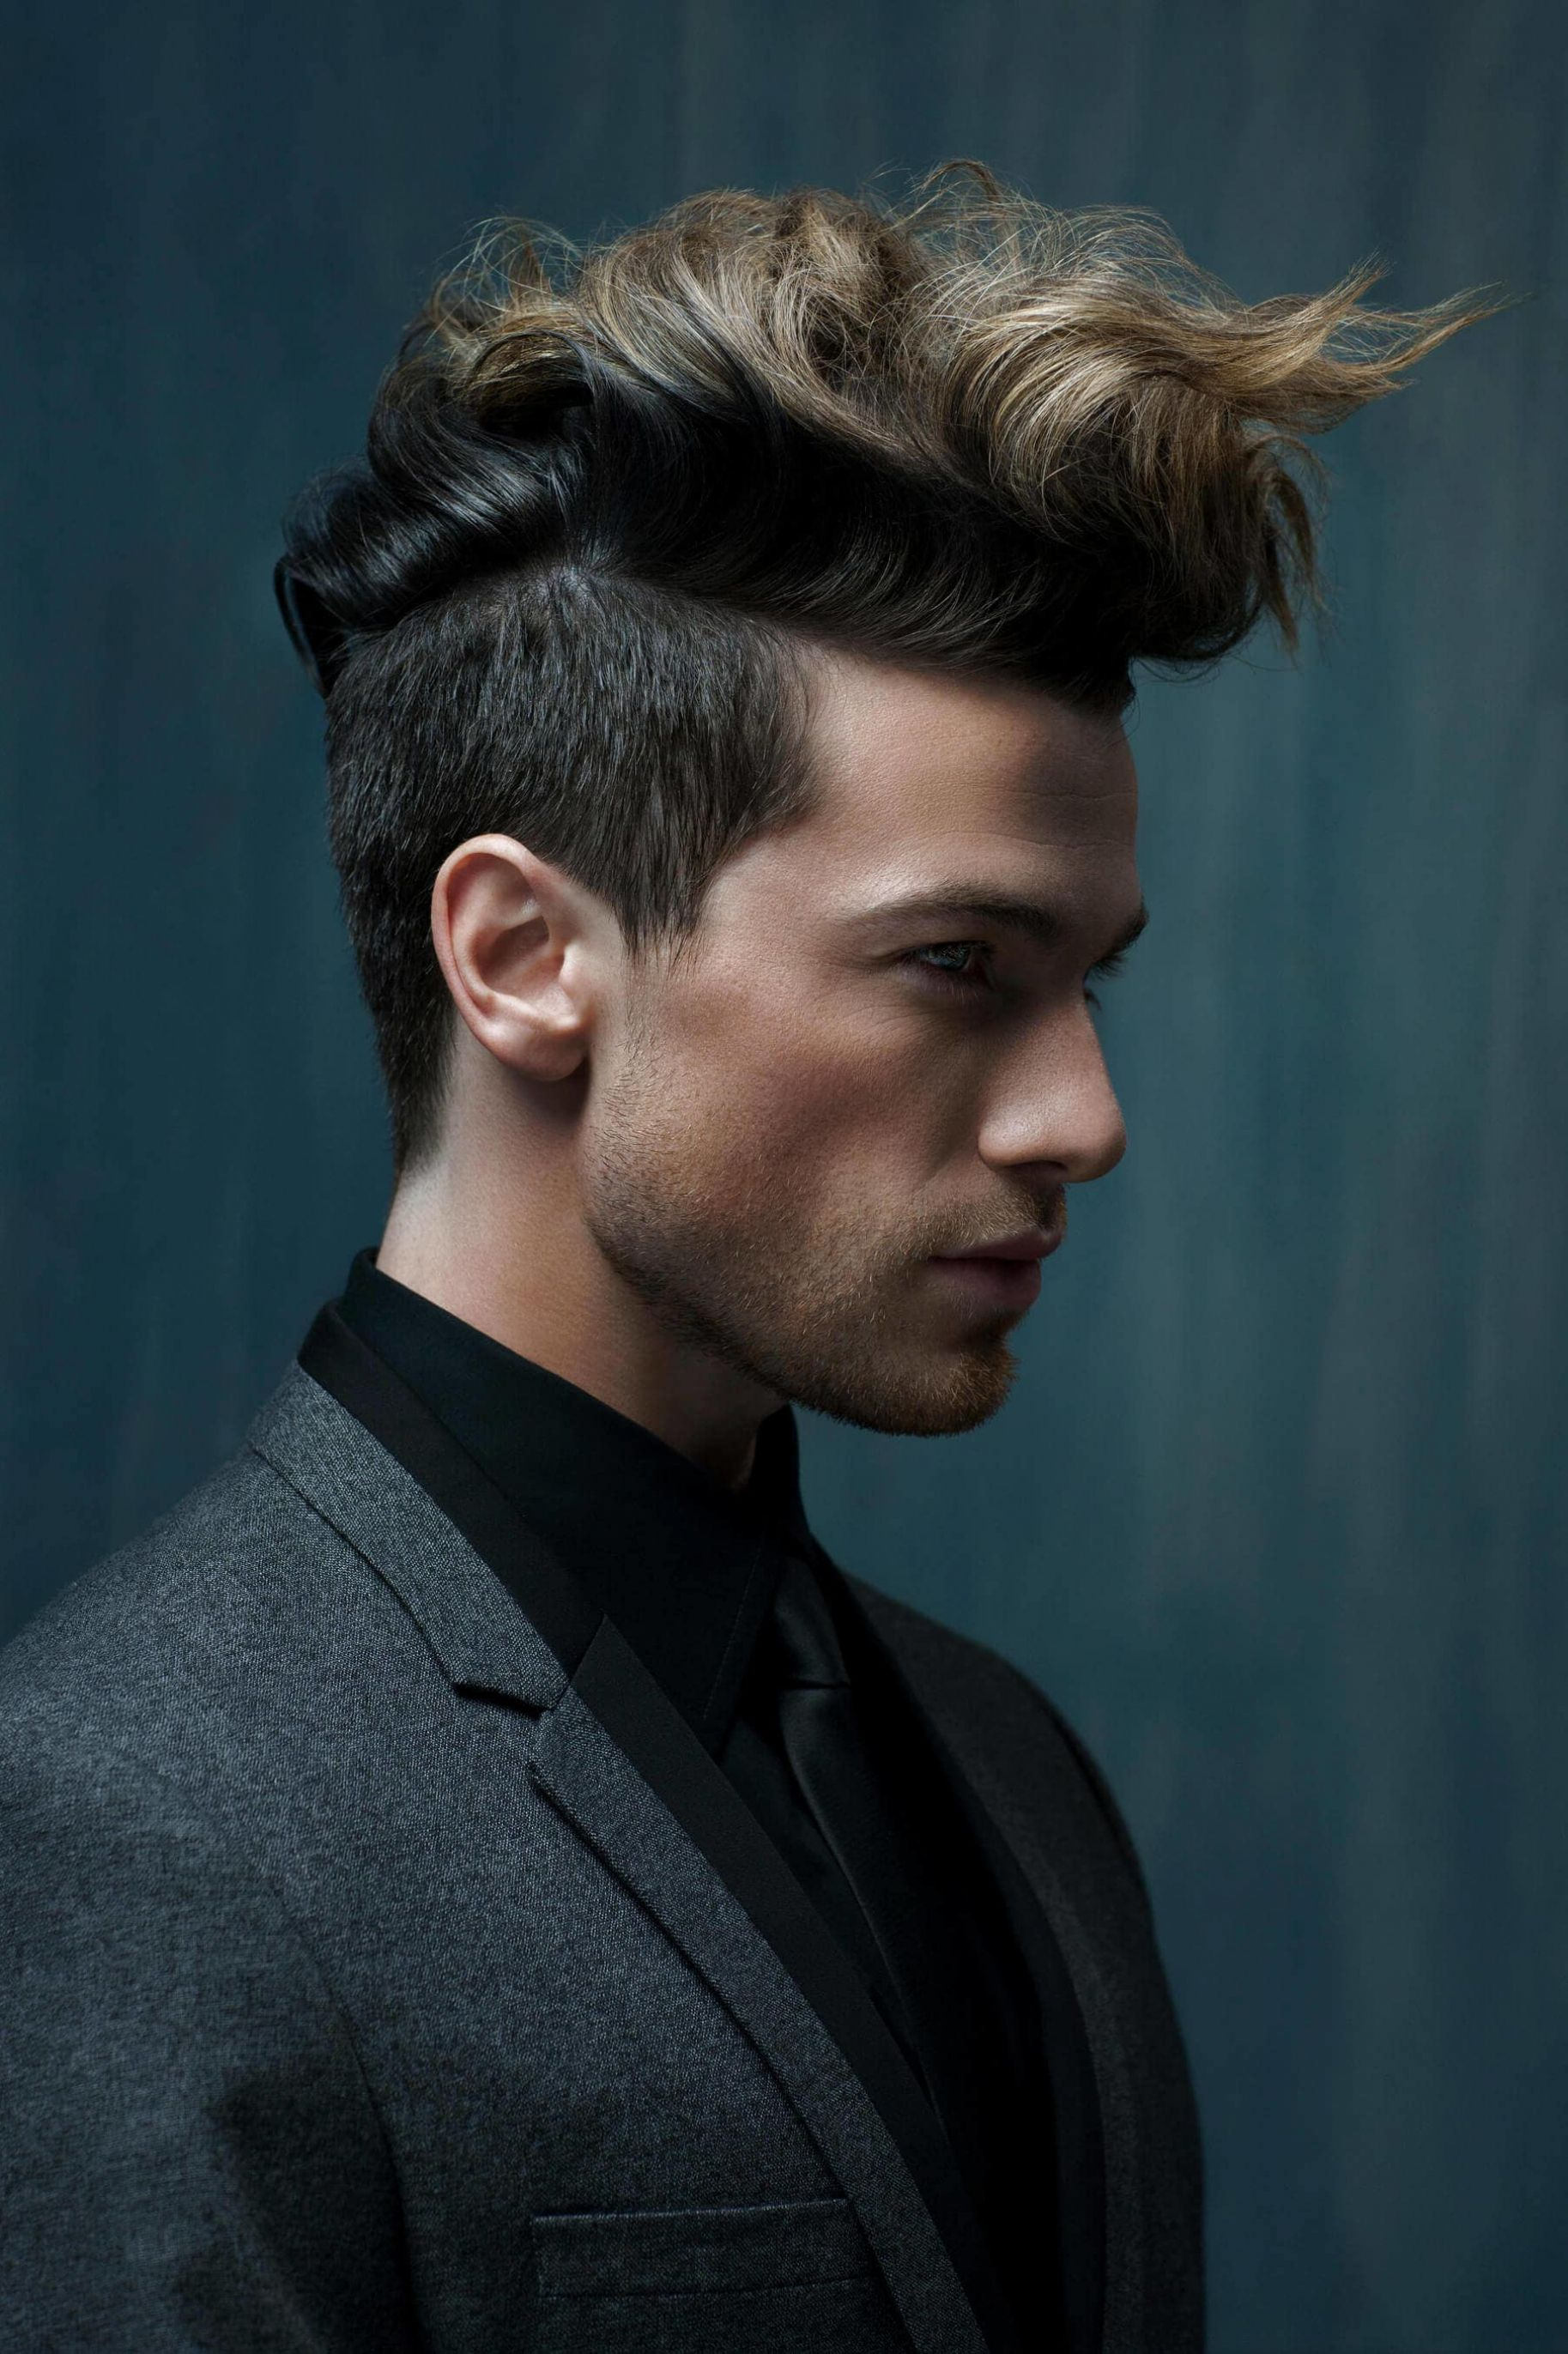 Astonishing Quiff The Latest Acquire Riveting Men Hairstyle Quiff Mens Hairstyles Cool Hairstyles Short Hair Styles